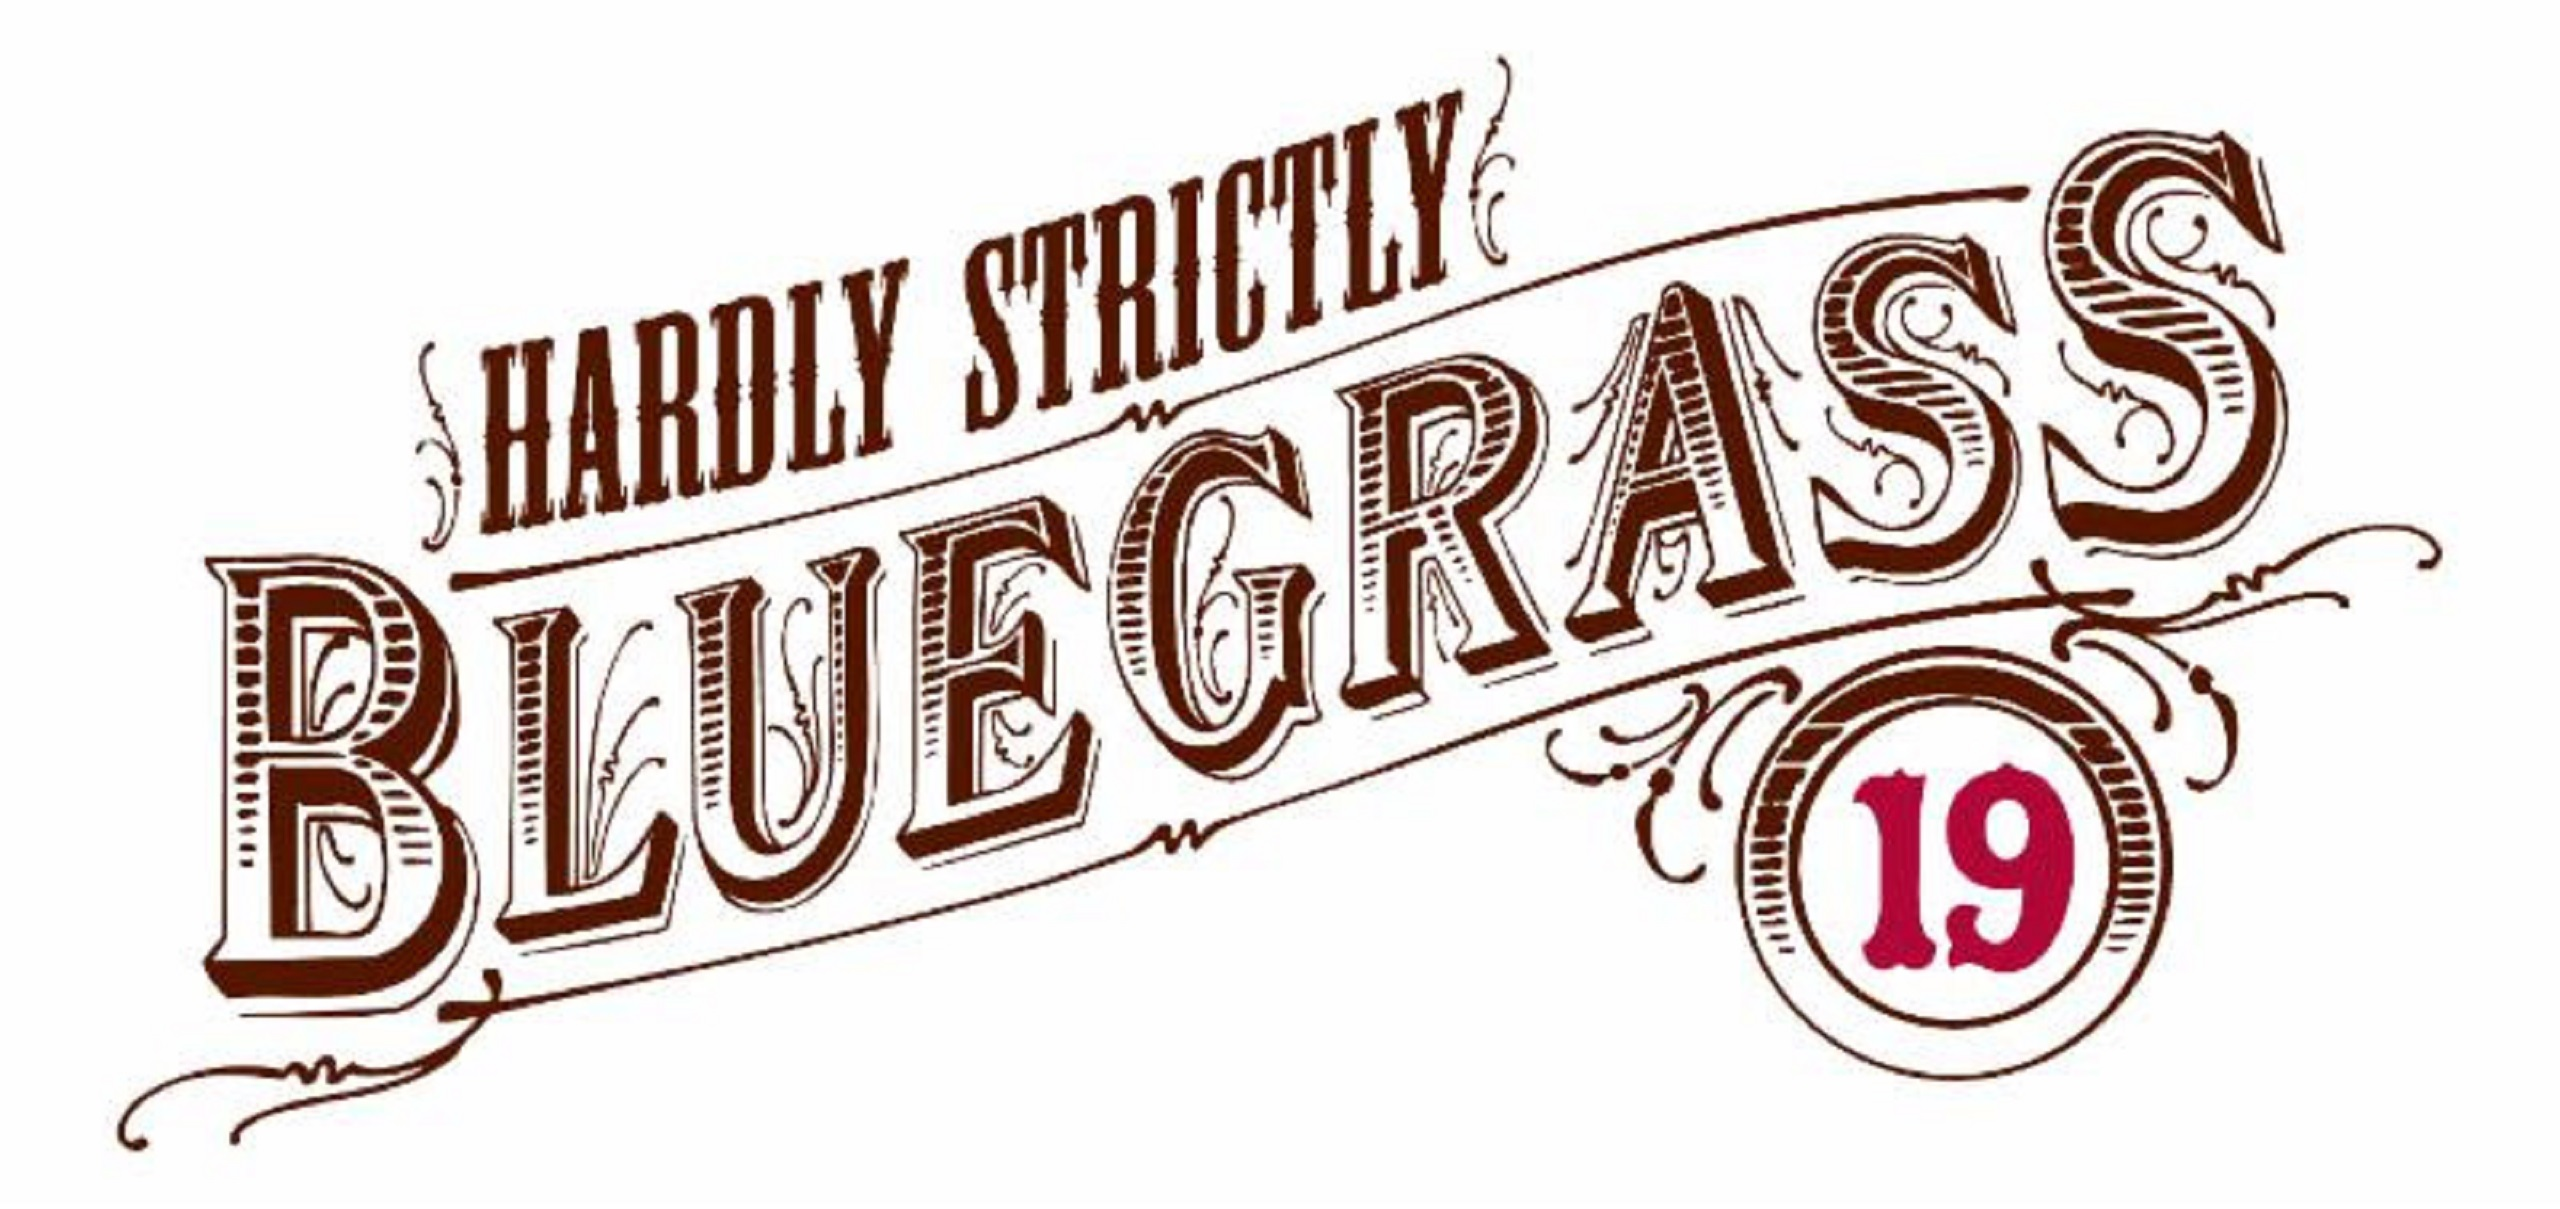 Hardly Strictly Bluegrass Announces Second Round Of Lineup For 2019